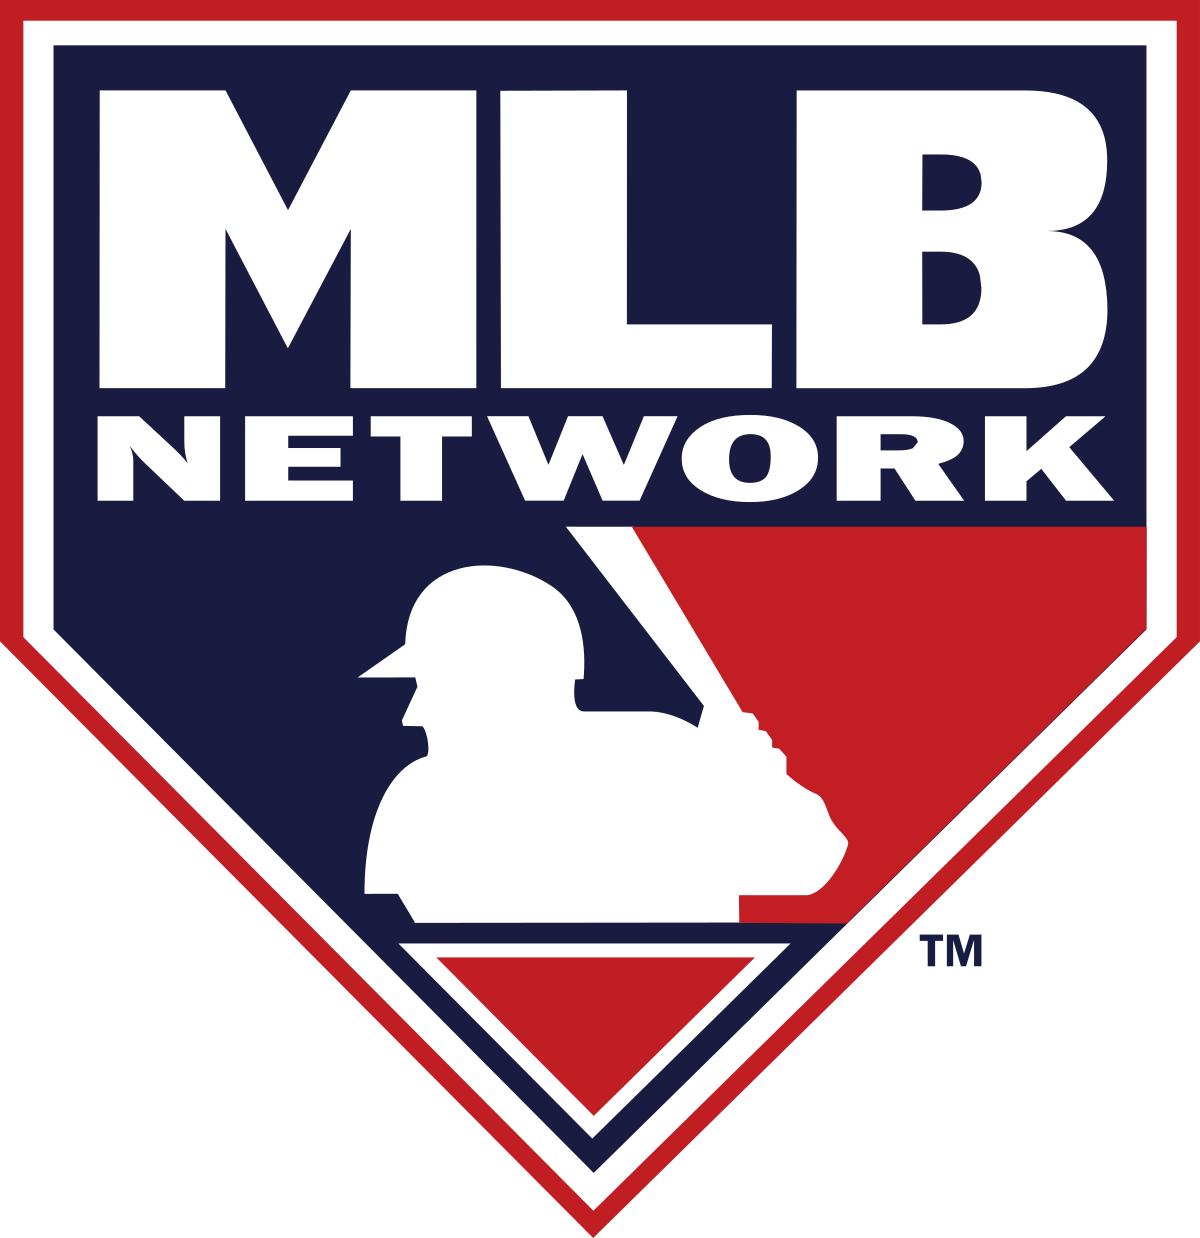 Mets vs Phillies to be first Major League Baseball  game broadcasted on Facebook